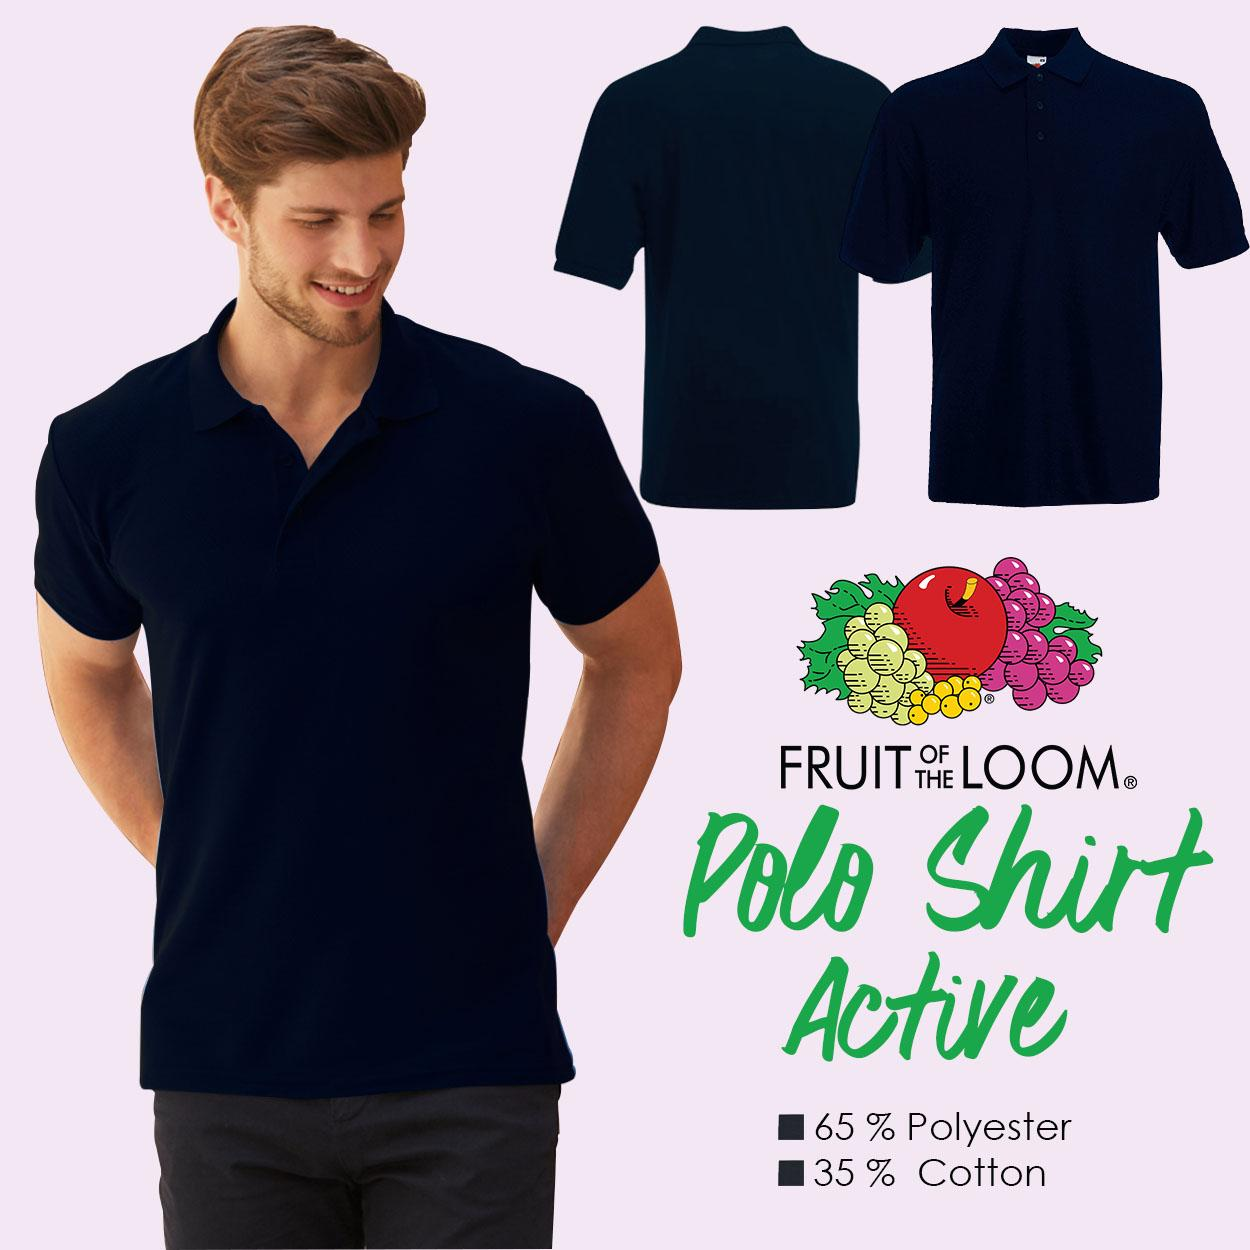 bbd262456a2 Product details of Fruit of the Loom Unisex Active Polo Shirt tshirt plain  tee tees Mens t shirt shirts for men tshirts t-shirts sale plain top Navy  Blue